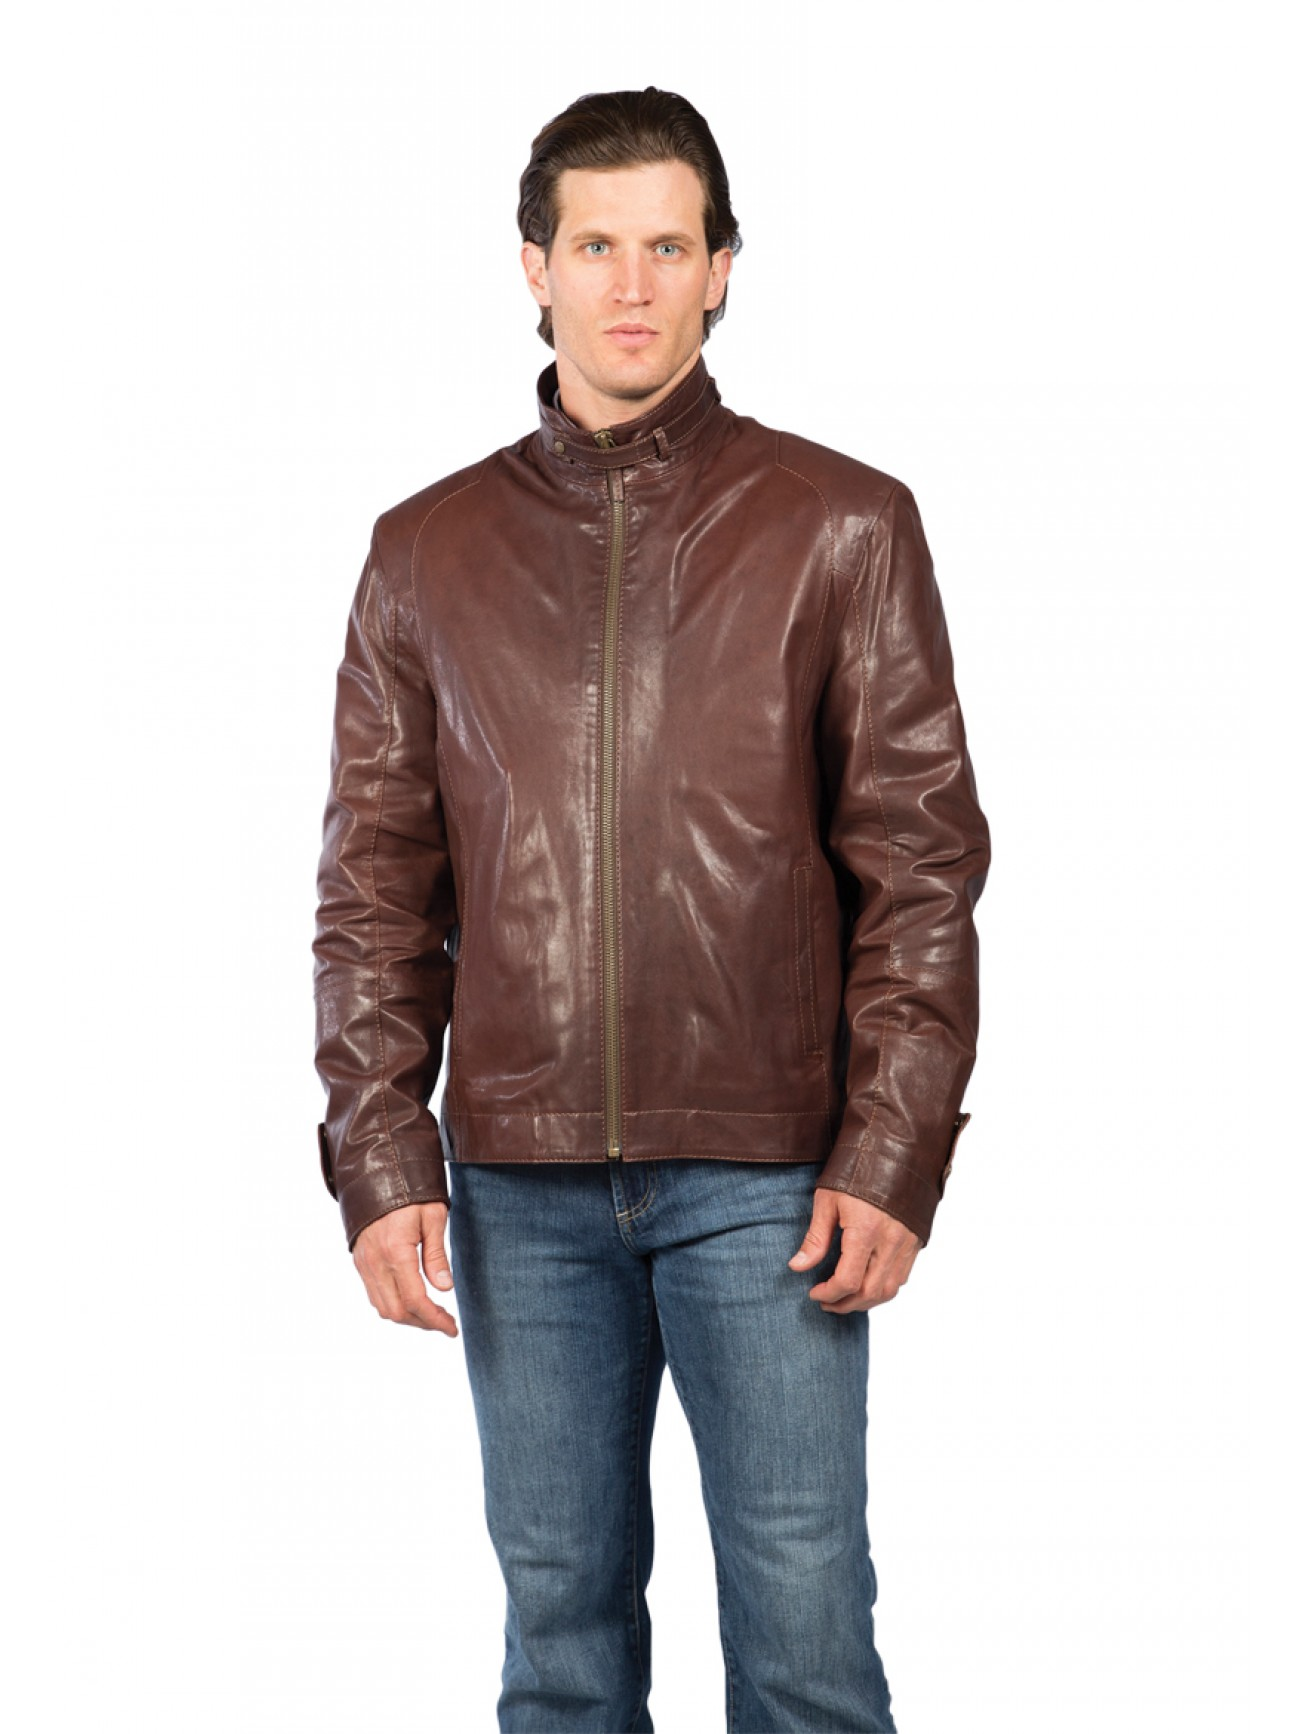 Men's Lambskin Leather Jacket